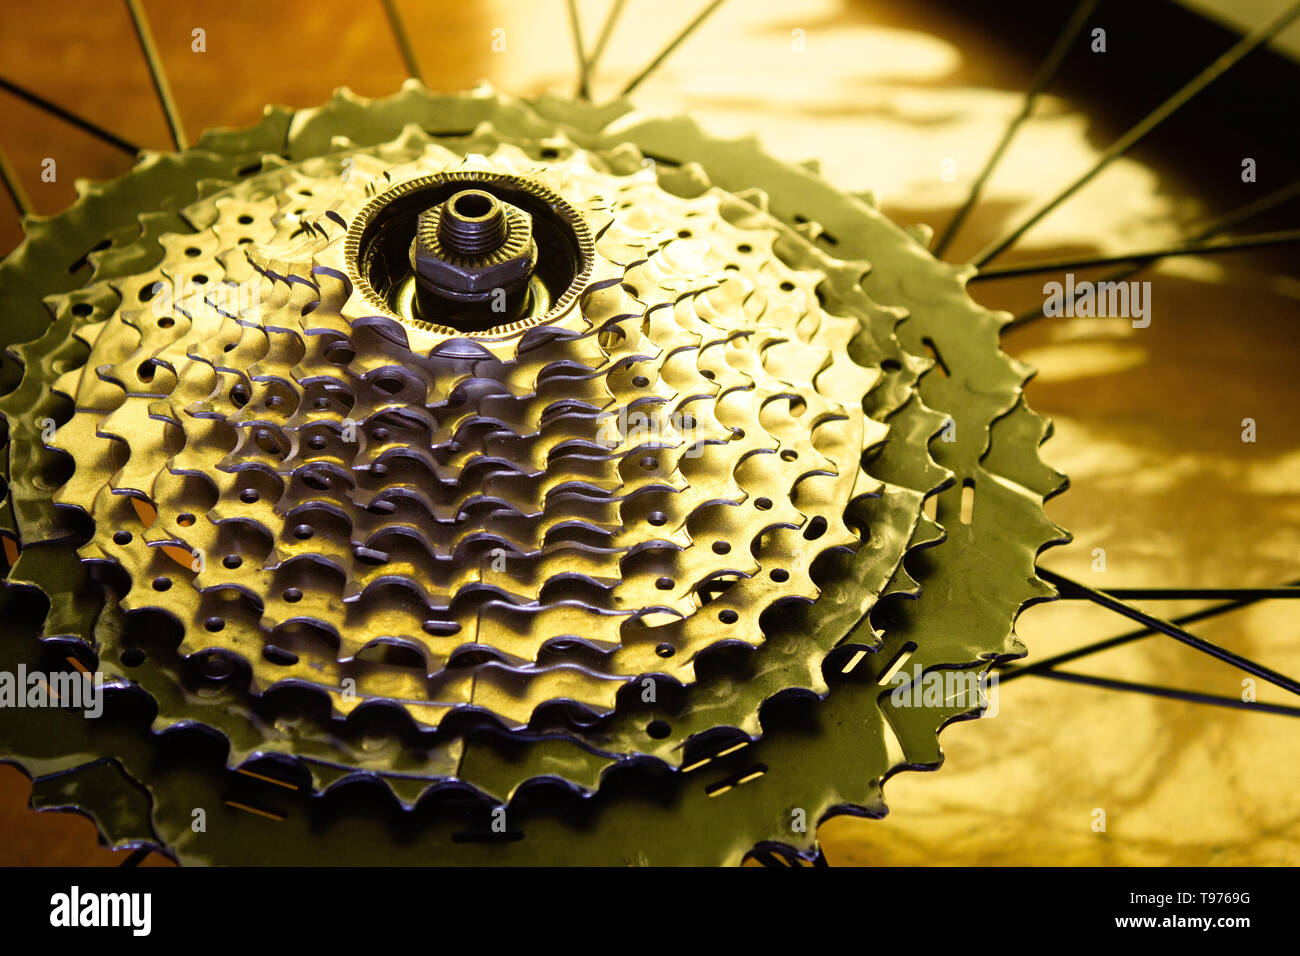 close up of a 11 speed mountain bike cassette mounted on the rear hub - Stock Image